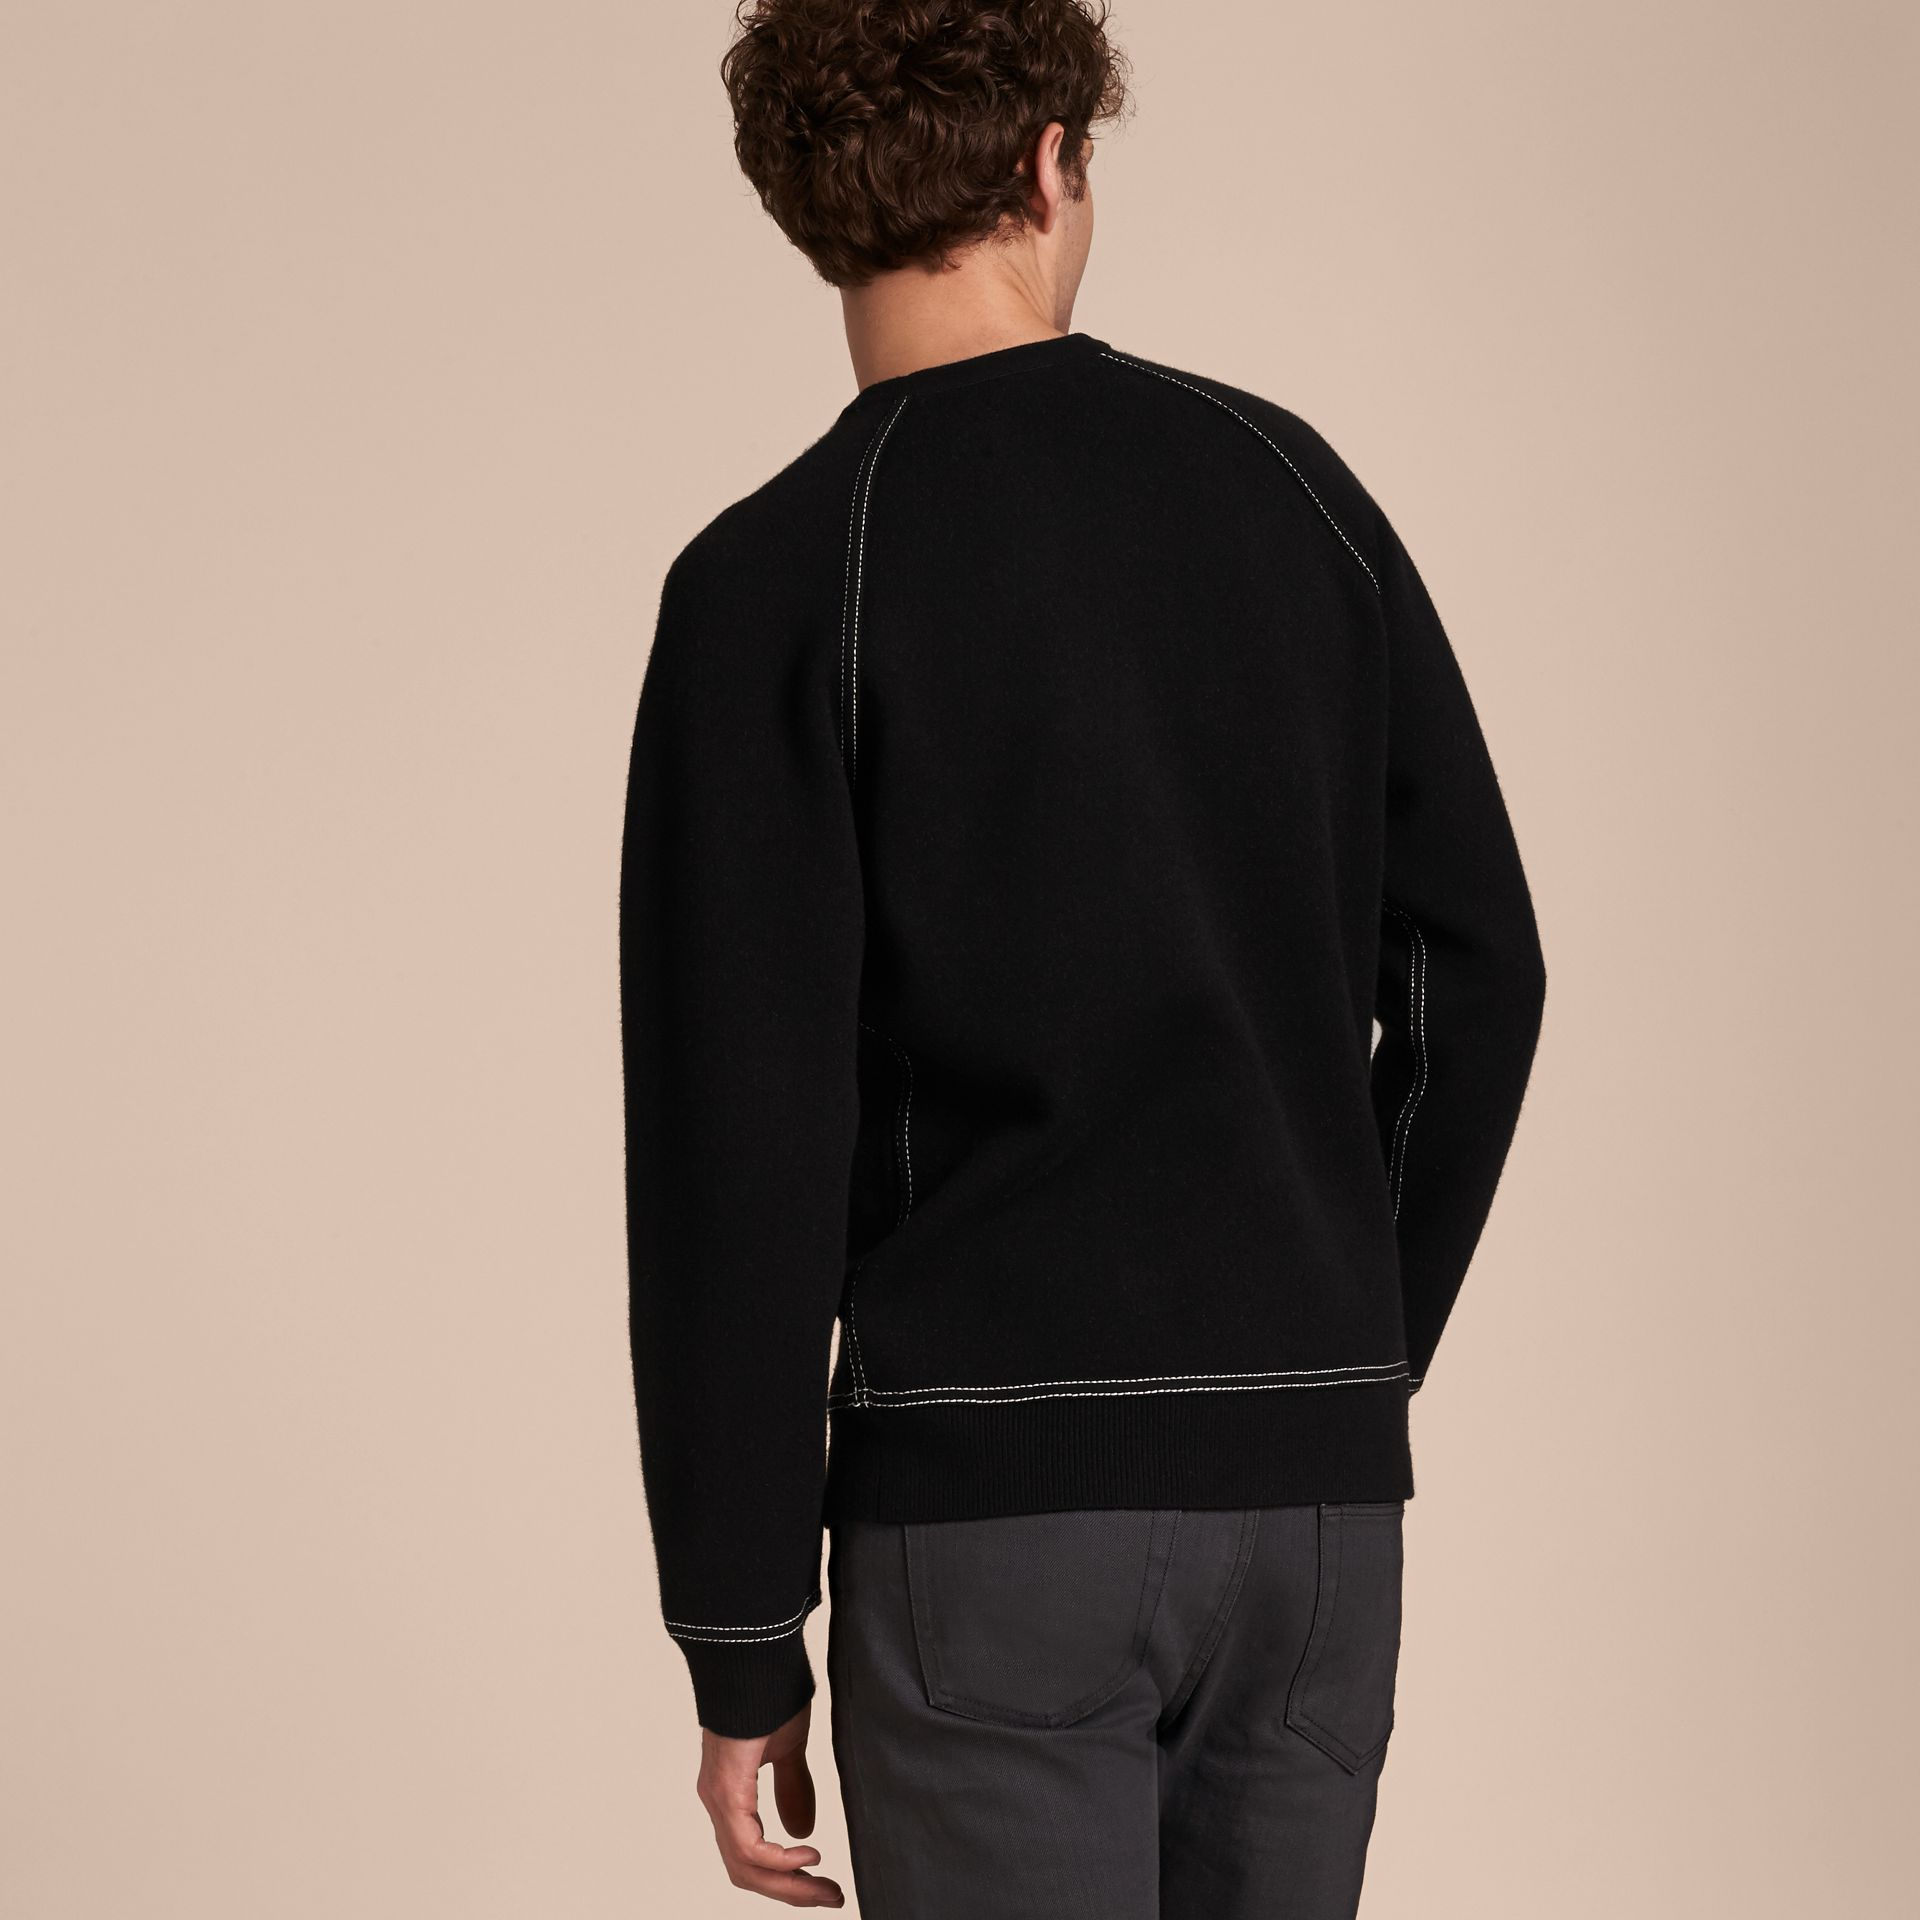 Black Topstitch Detail Wool Cashmere Blend Sweatshirt Black - gallery image 3